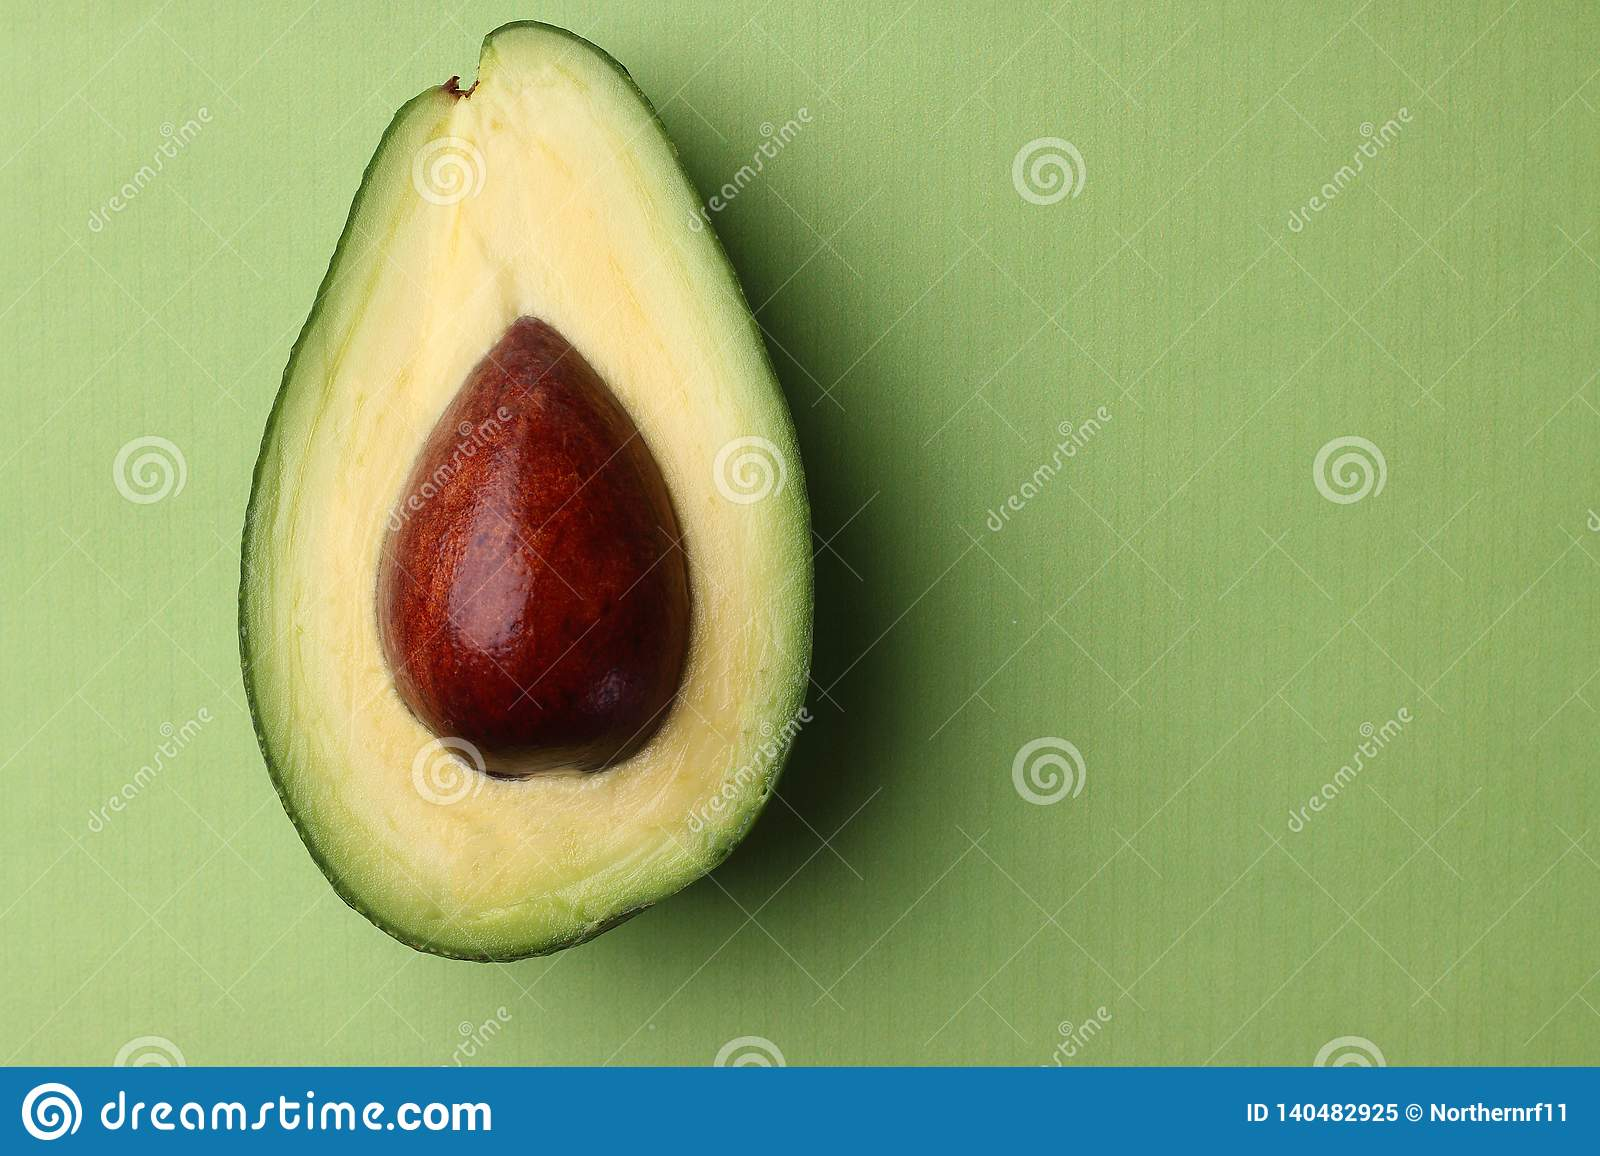 Avocado with seed on green. half avocado on green background